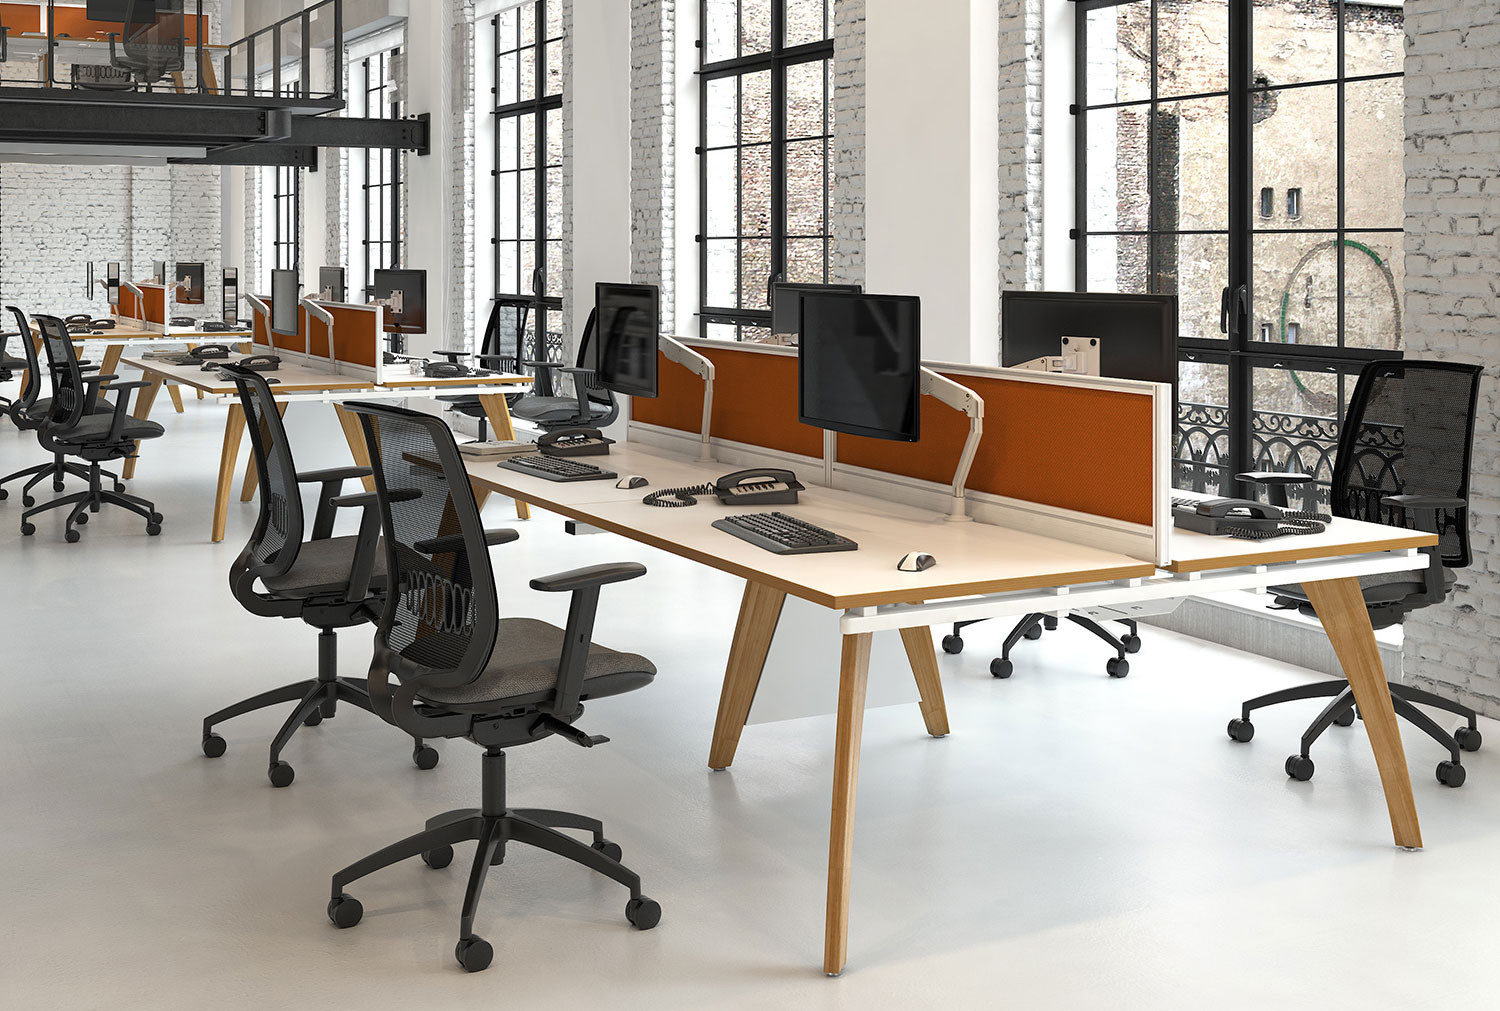 Central Drop Down Cable Tray And Bracket For Distill Bench Desks